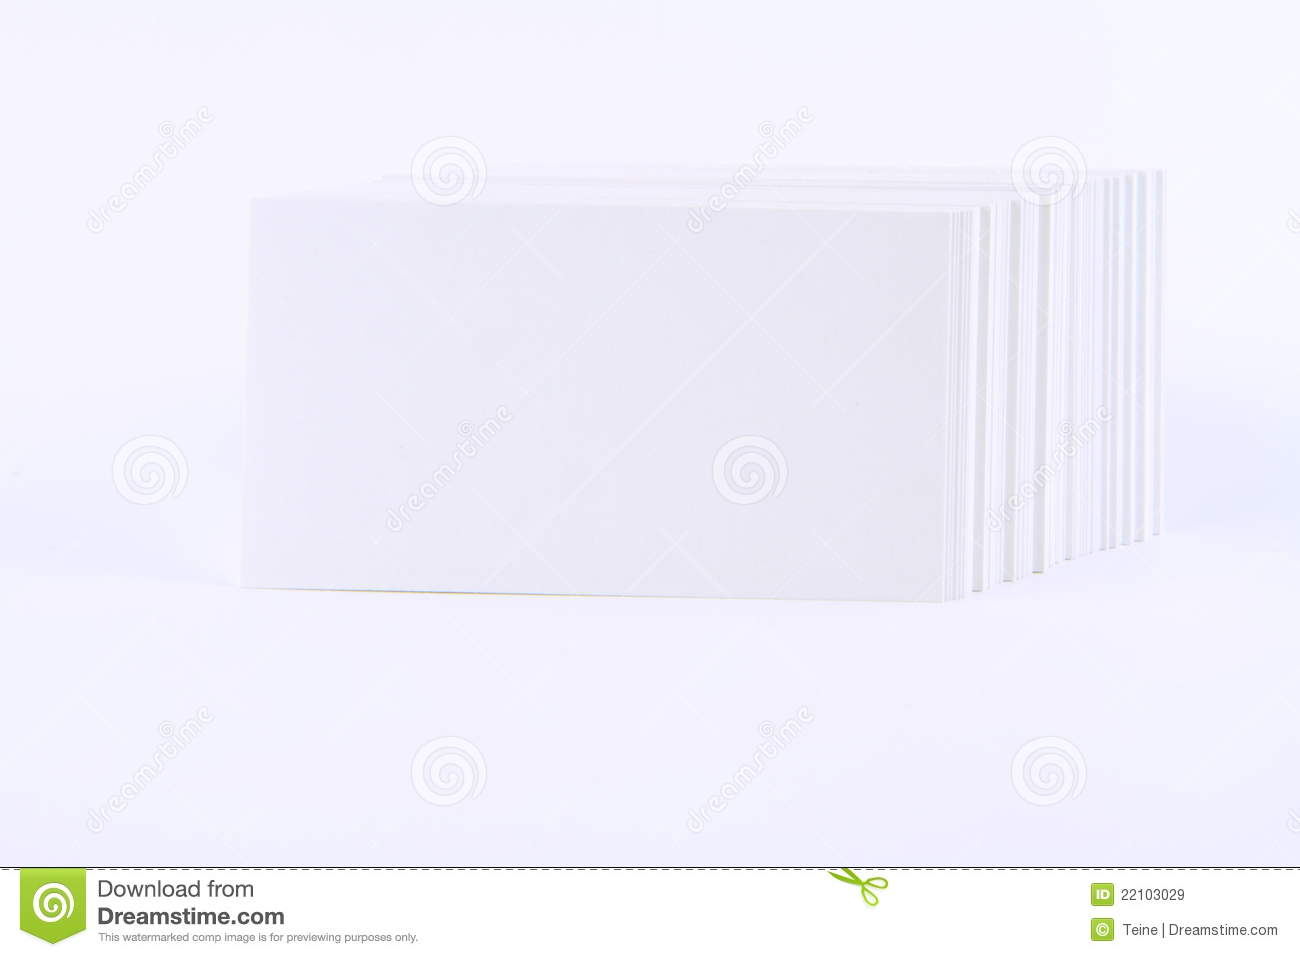 Bank business cards stock image. Image of white, space - 22103029